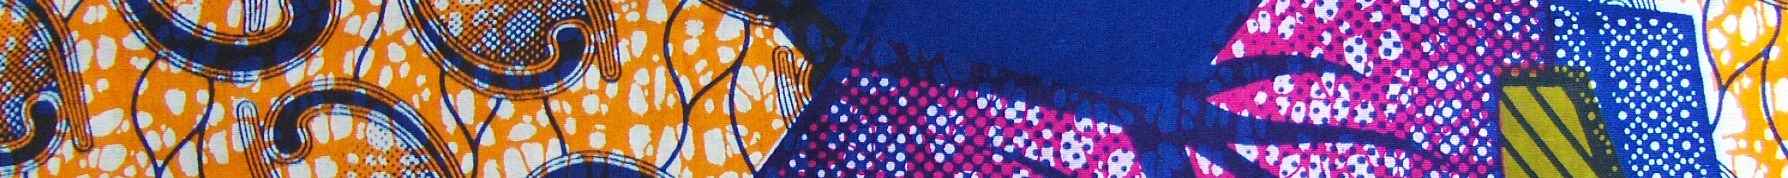 Pink, Orange, Blue Fabric.JPG